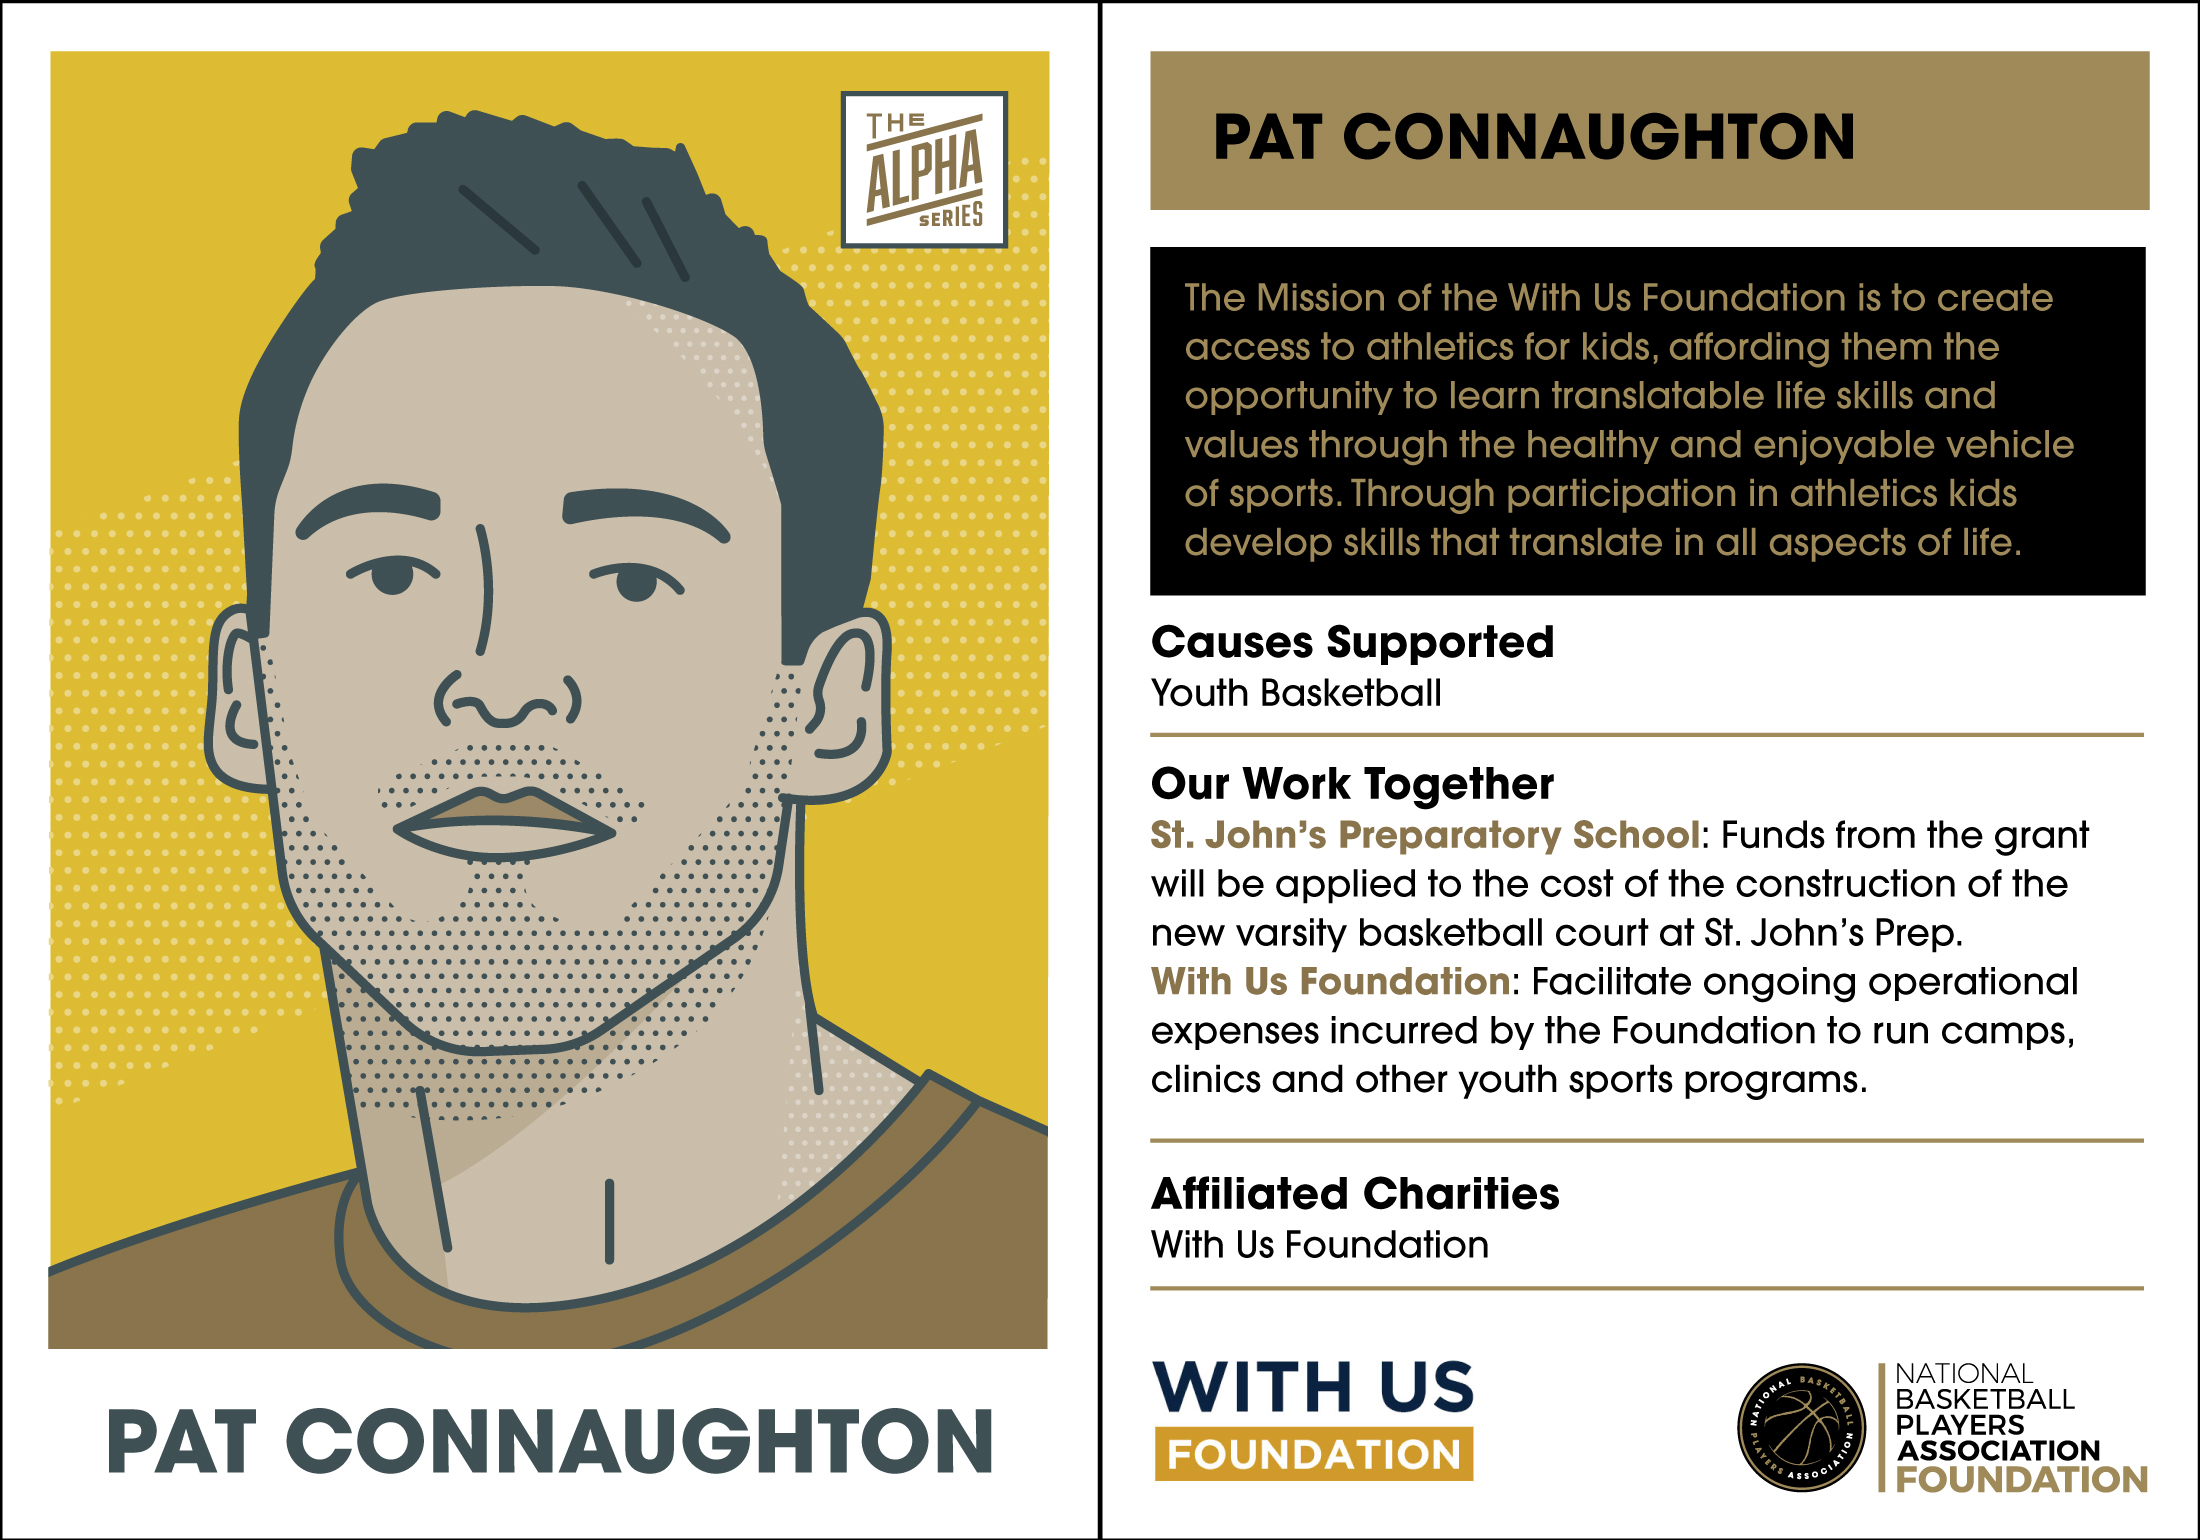 PC-Pat-Connaughton.jpg